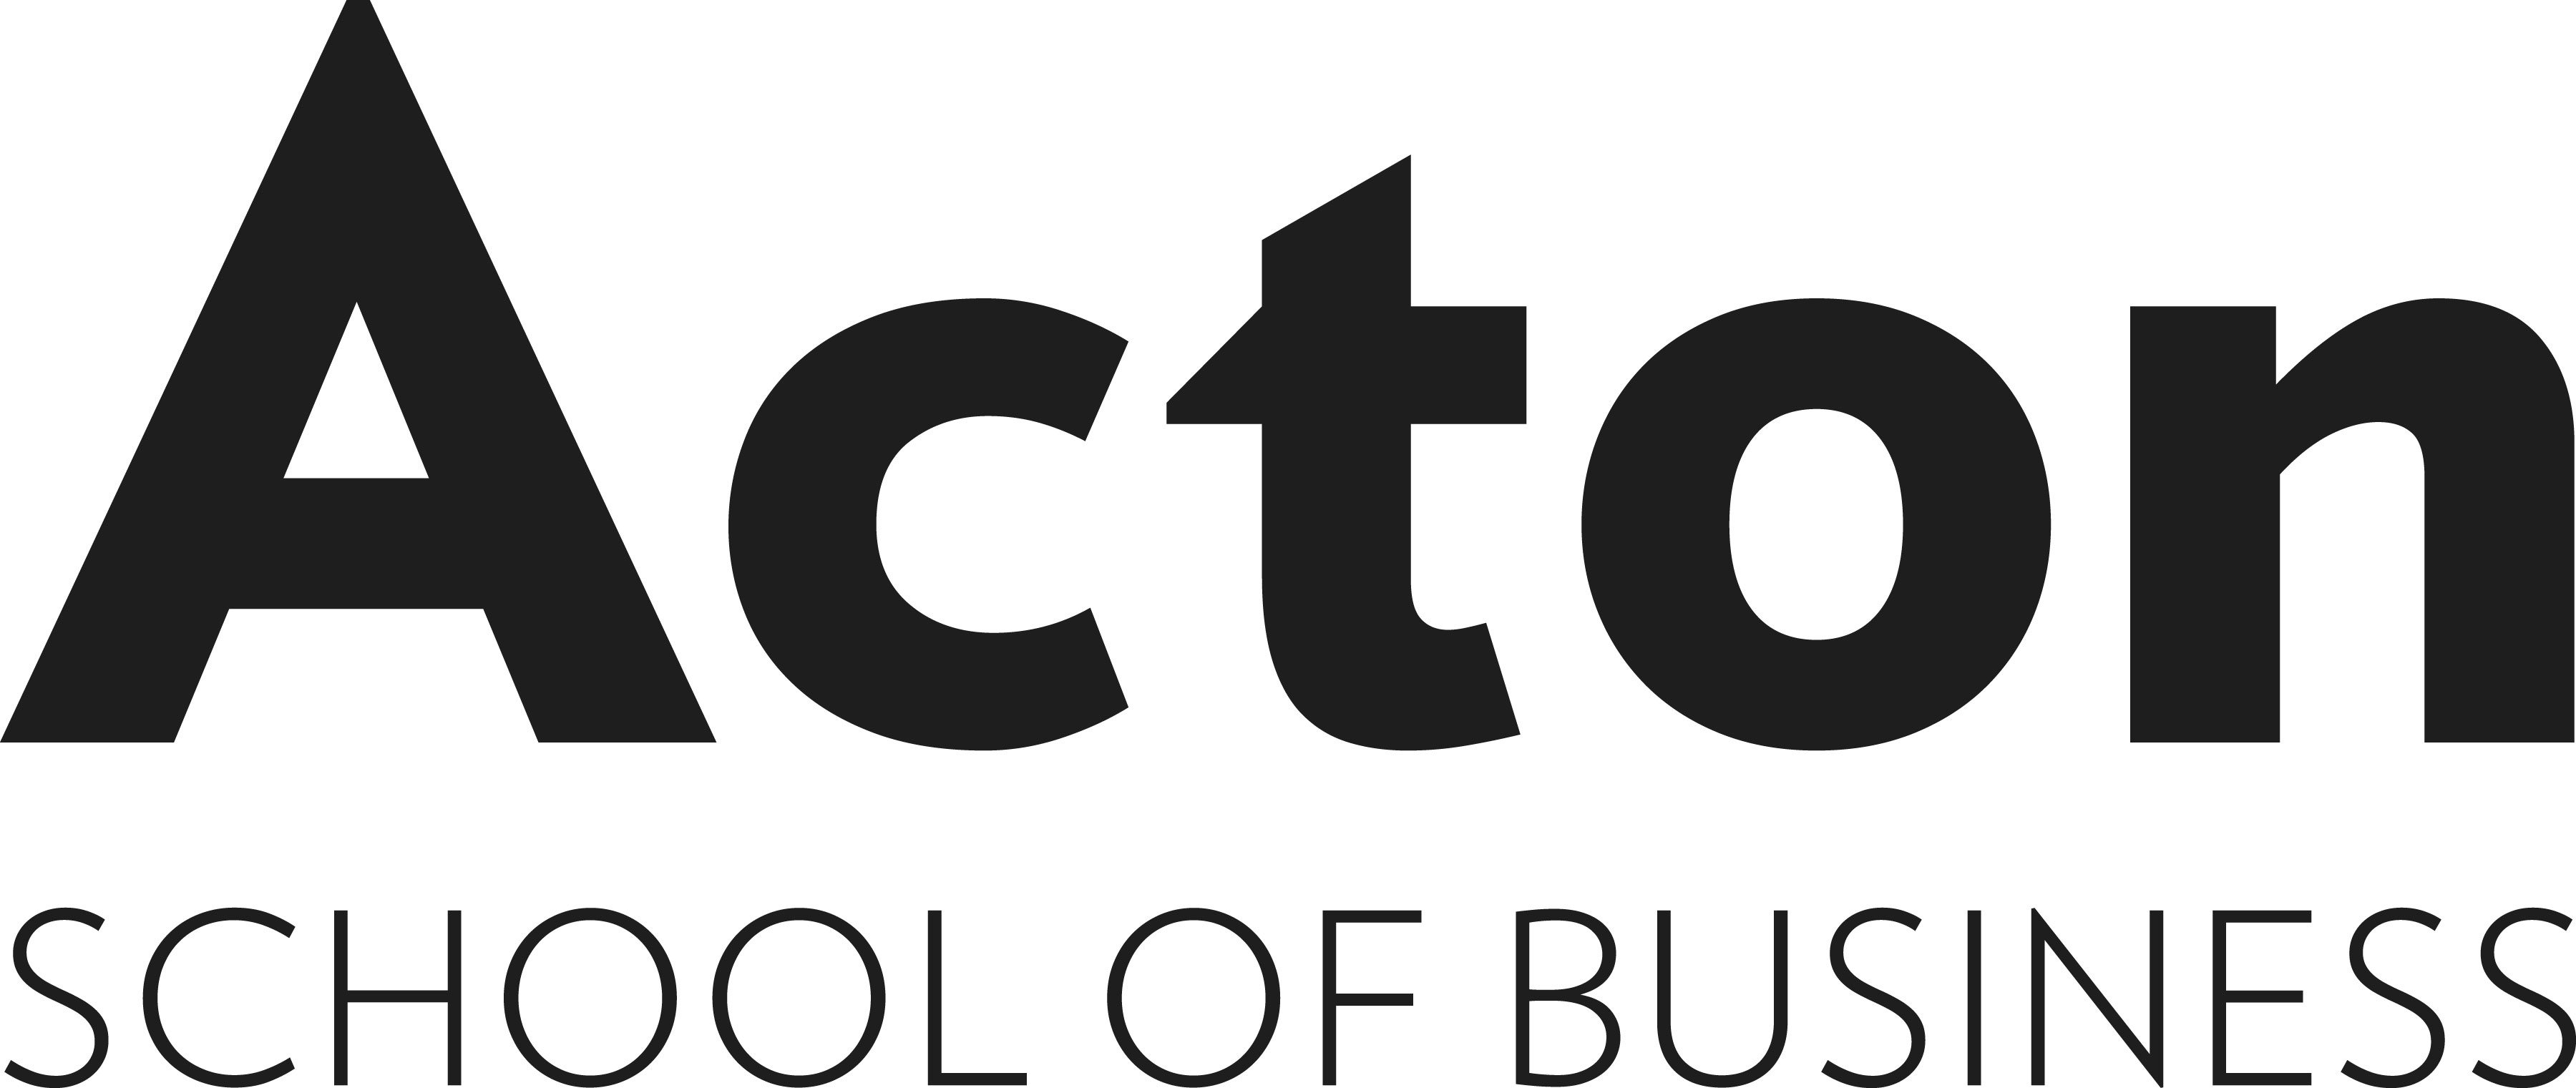 Acton Launches Acton Edge, the New Standard for